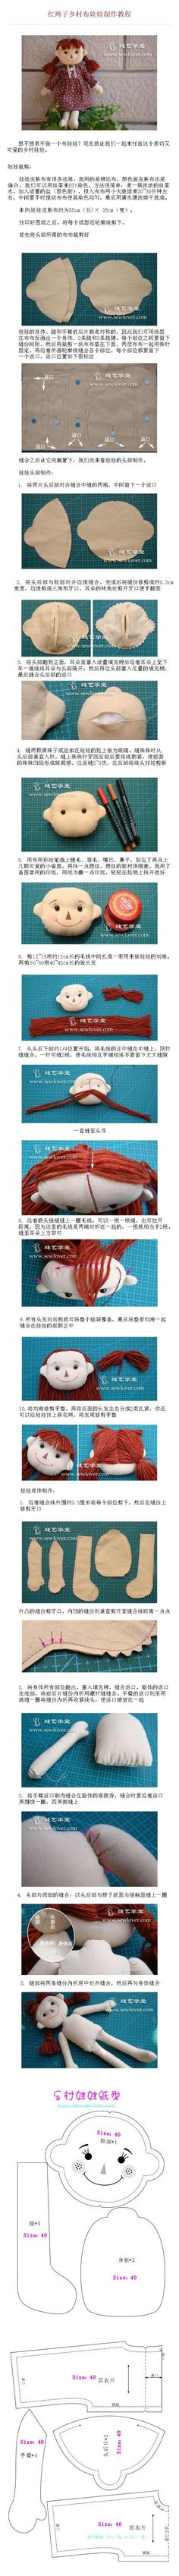 I don't understand what's written, but the pictures give clear instructions - rag doll head